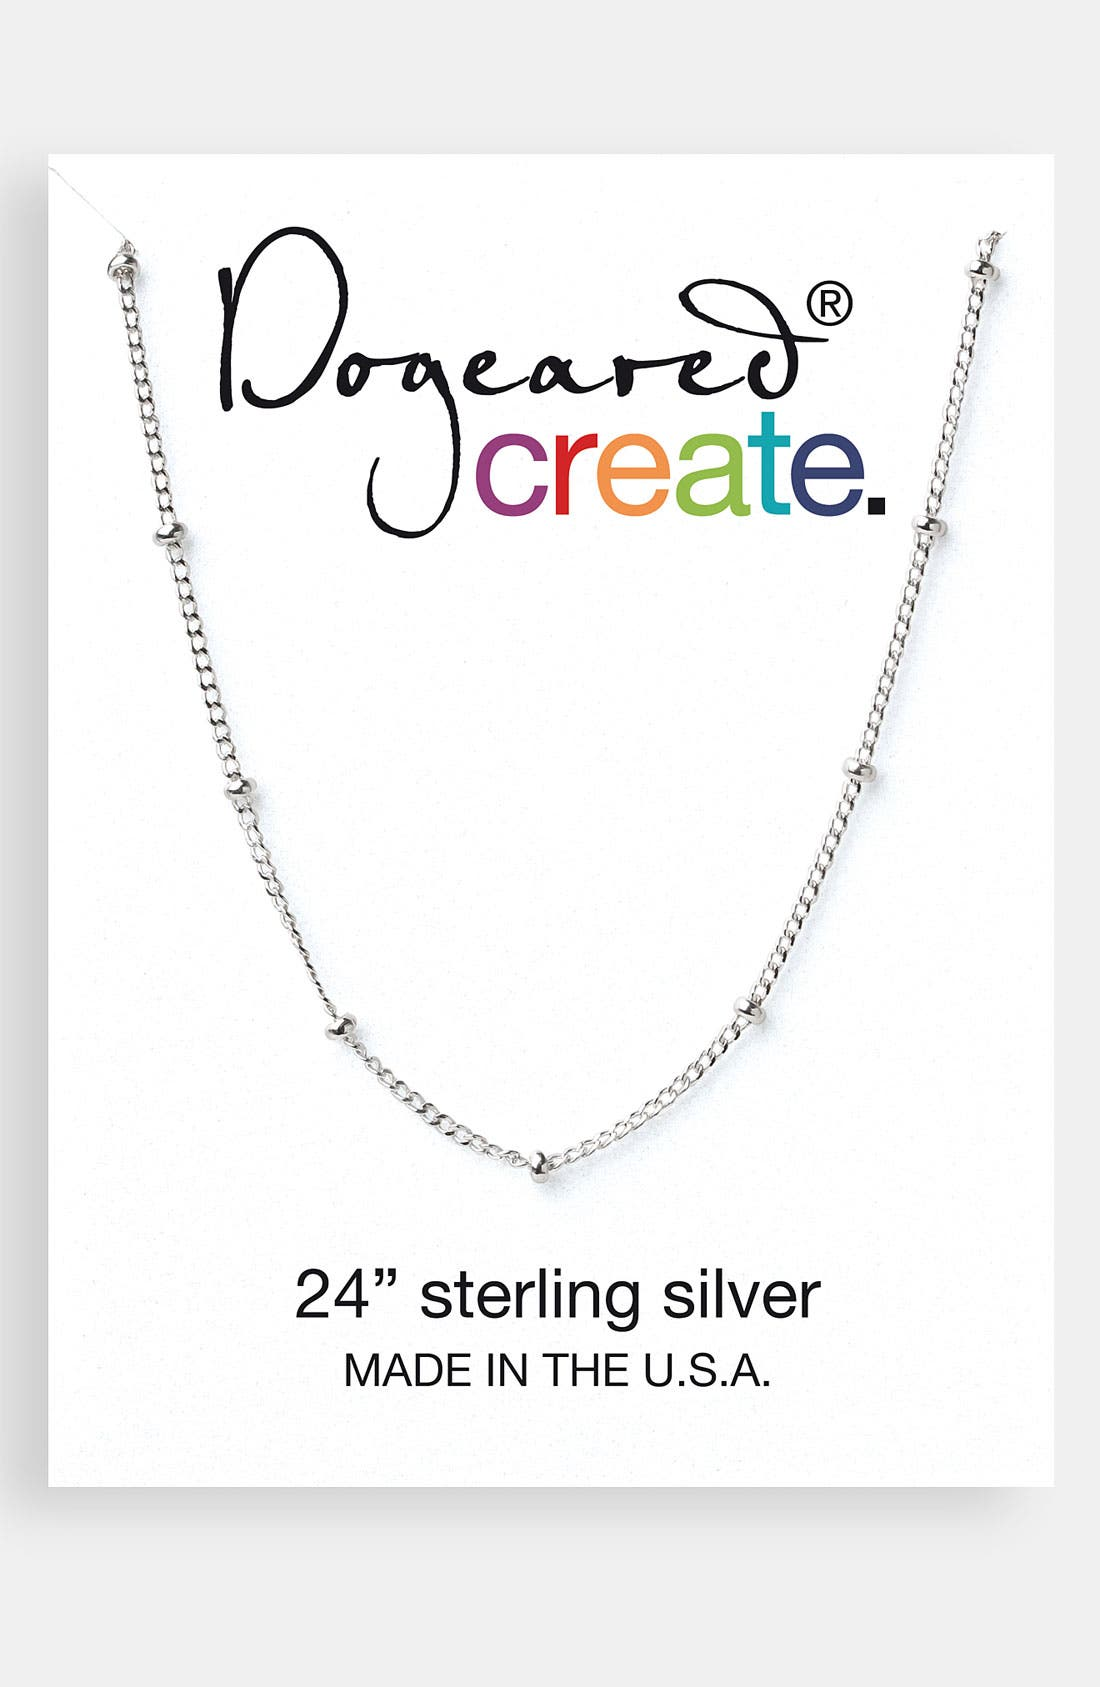 Alternate Image 1 Selected - Dogeared 'Create' Beaded Link Necklace